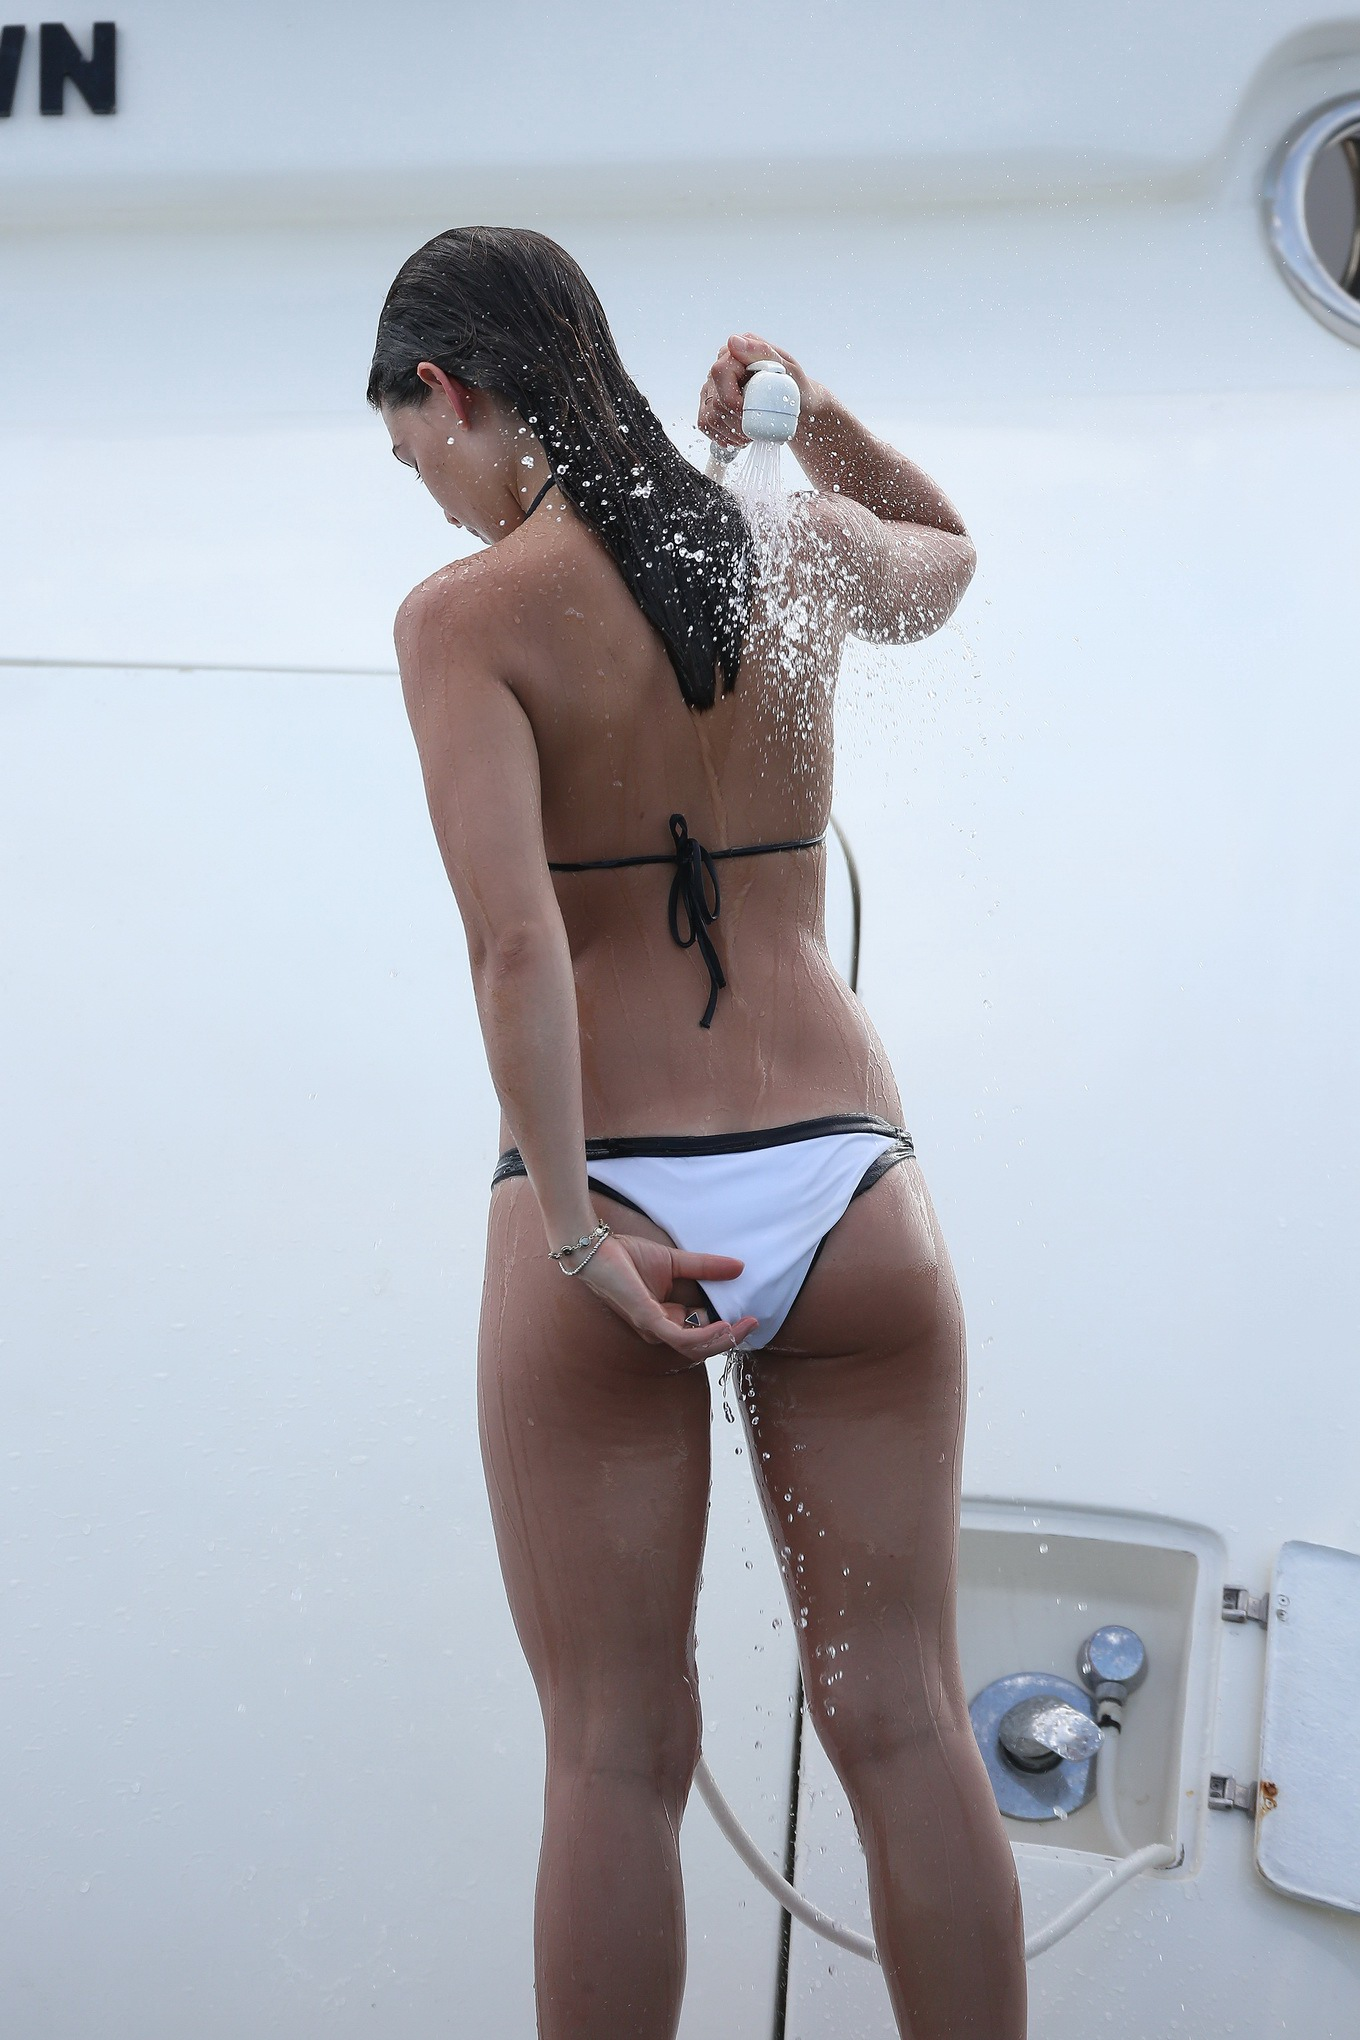 danielle campbell showing off her hot bikini body at the yacht in cabo